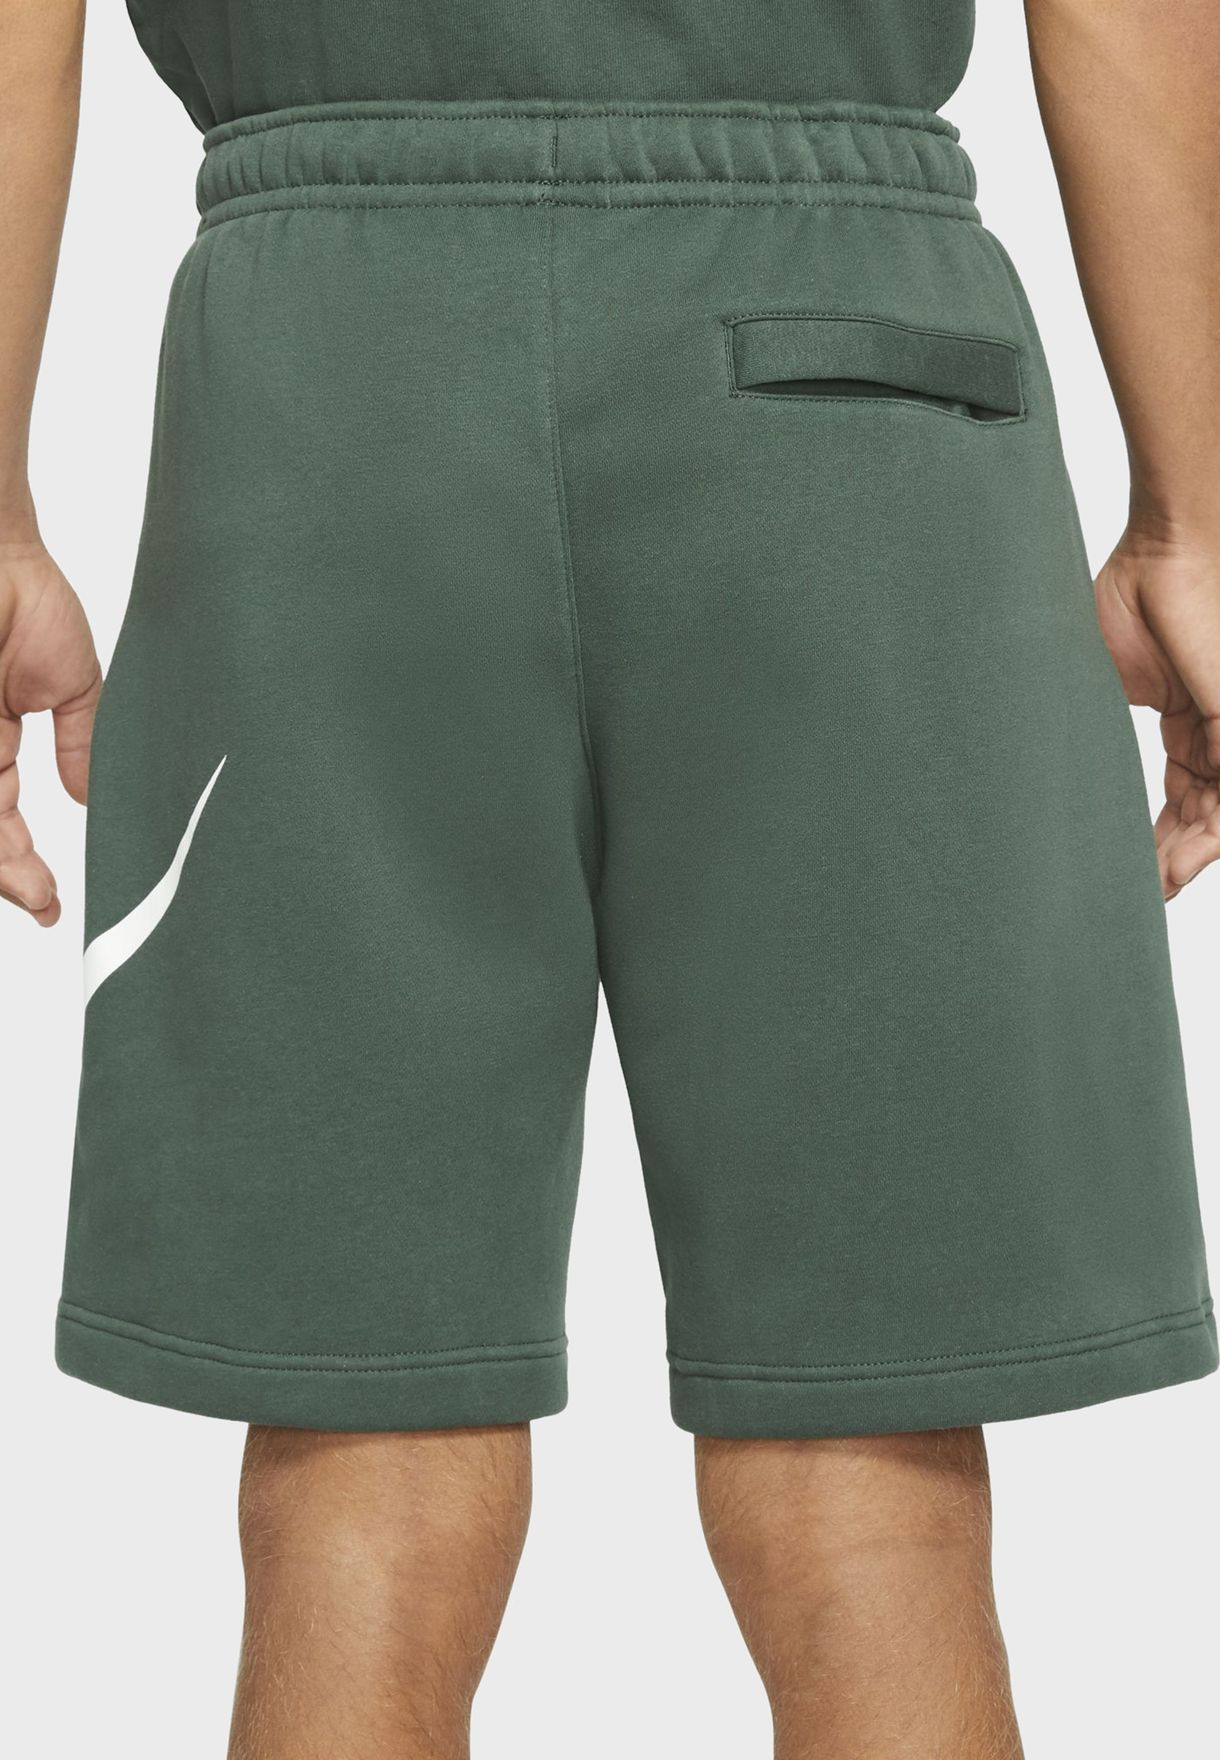 NSW Club Fleece Graphic Shorts